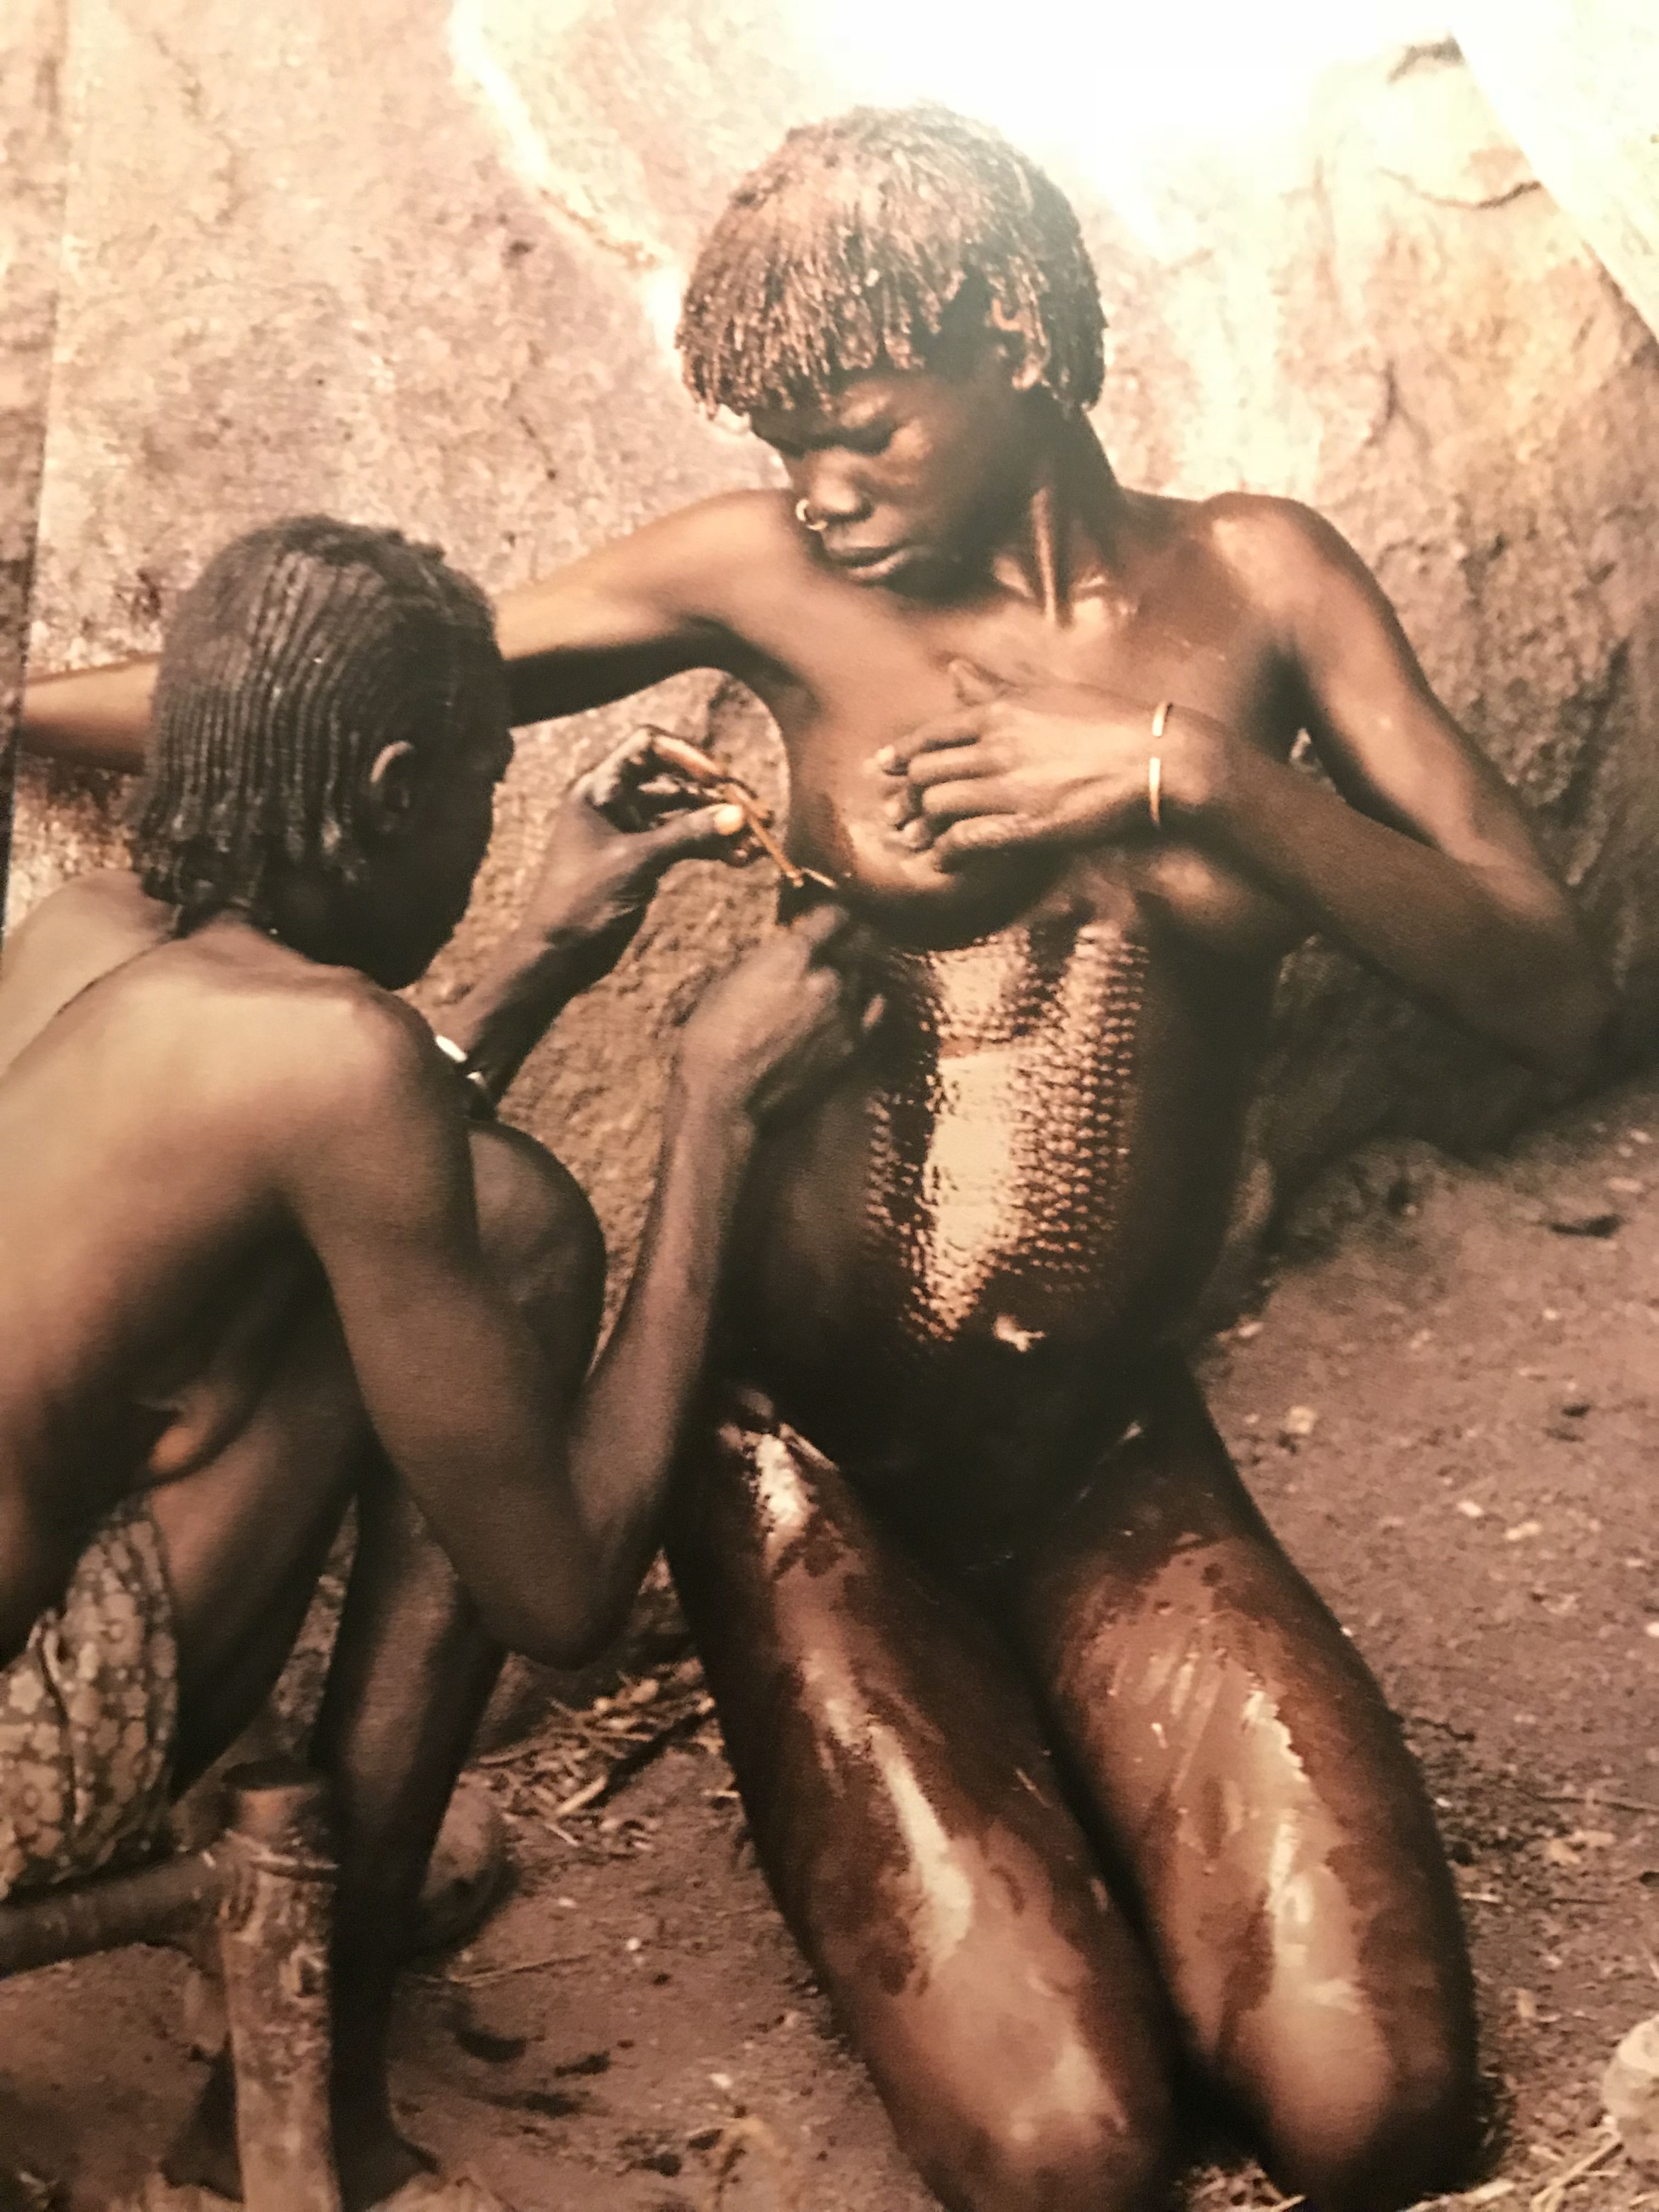 Pin By Jonathan Marvyn On Decadence Africa People Leni